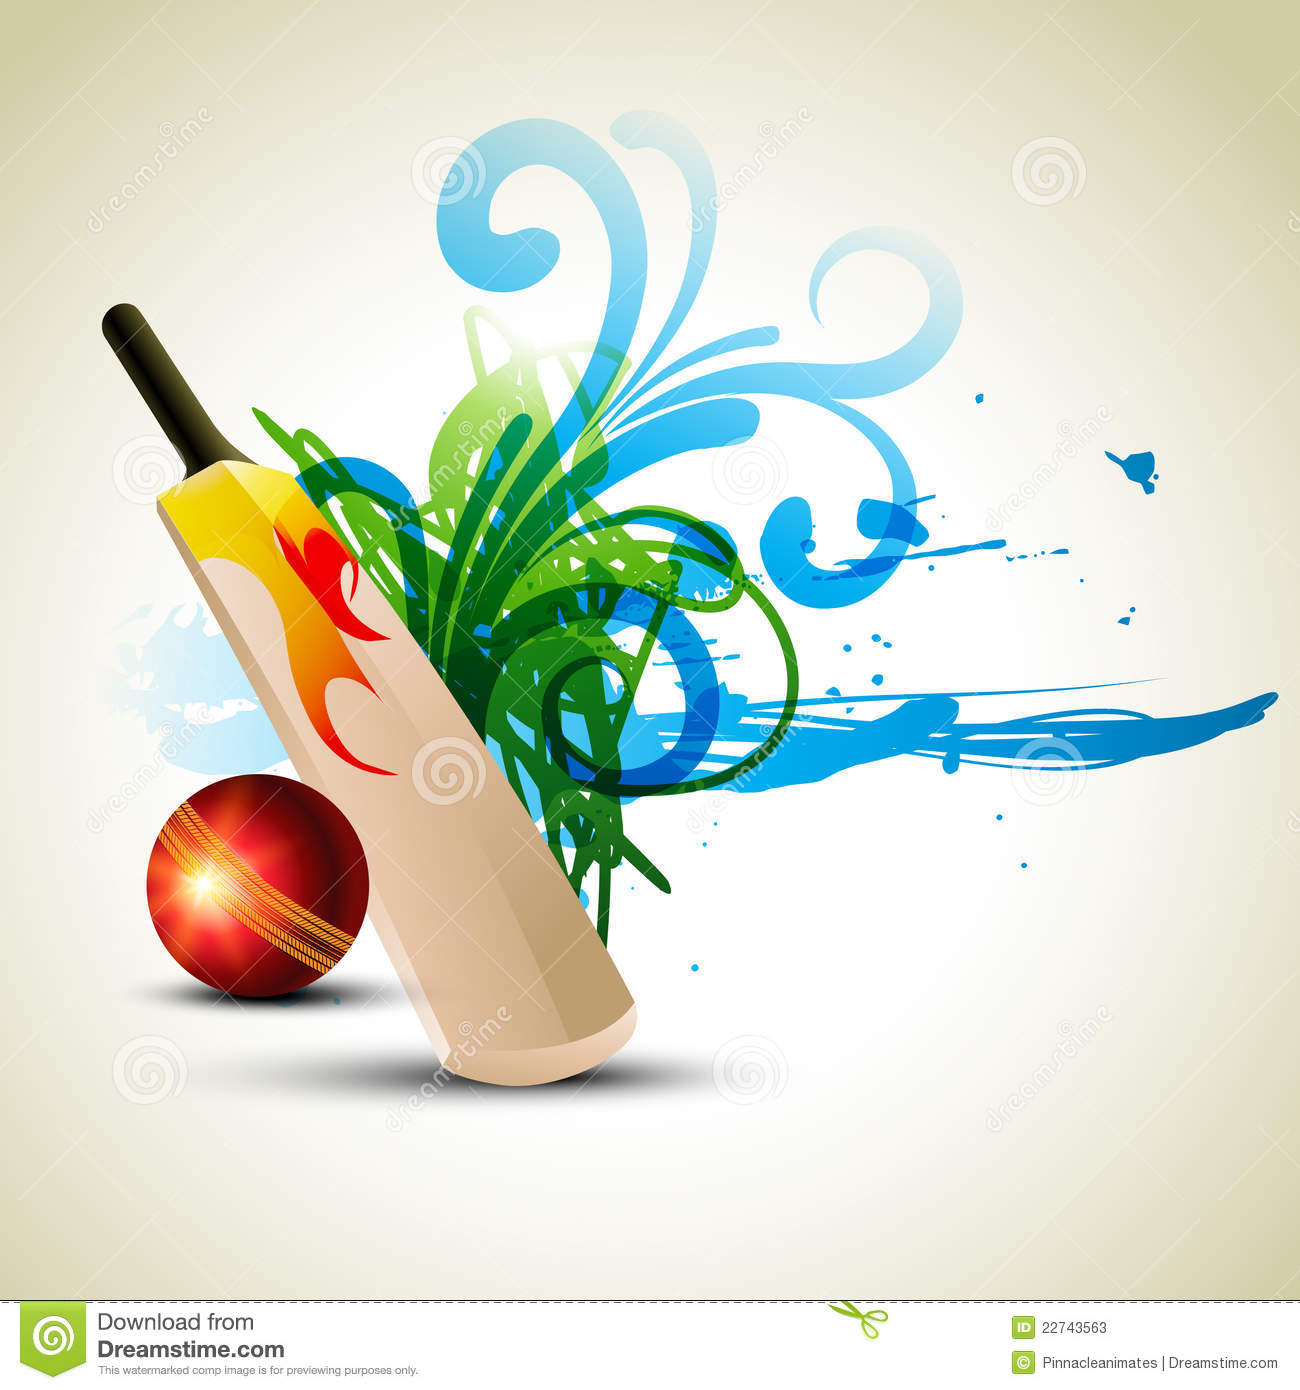 More similar stock images of ` Vector cricket background `